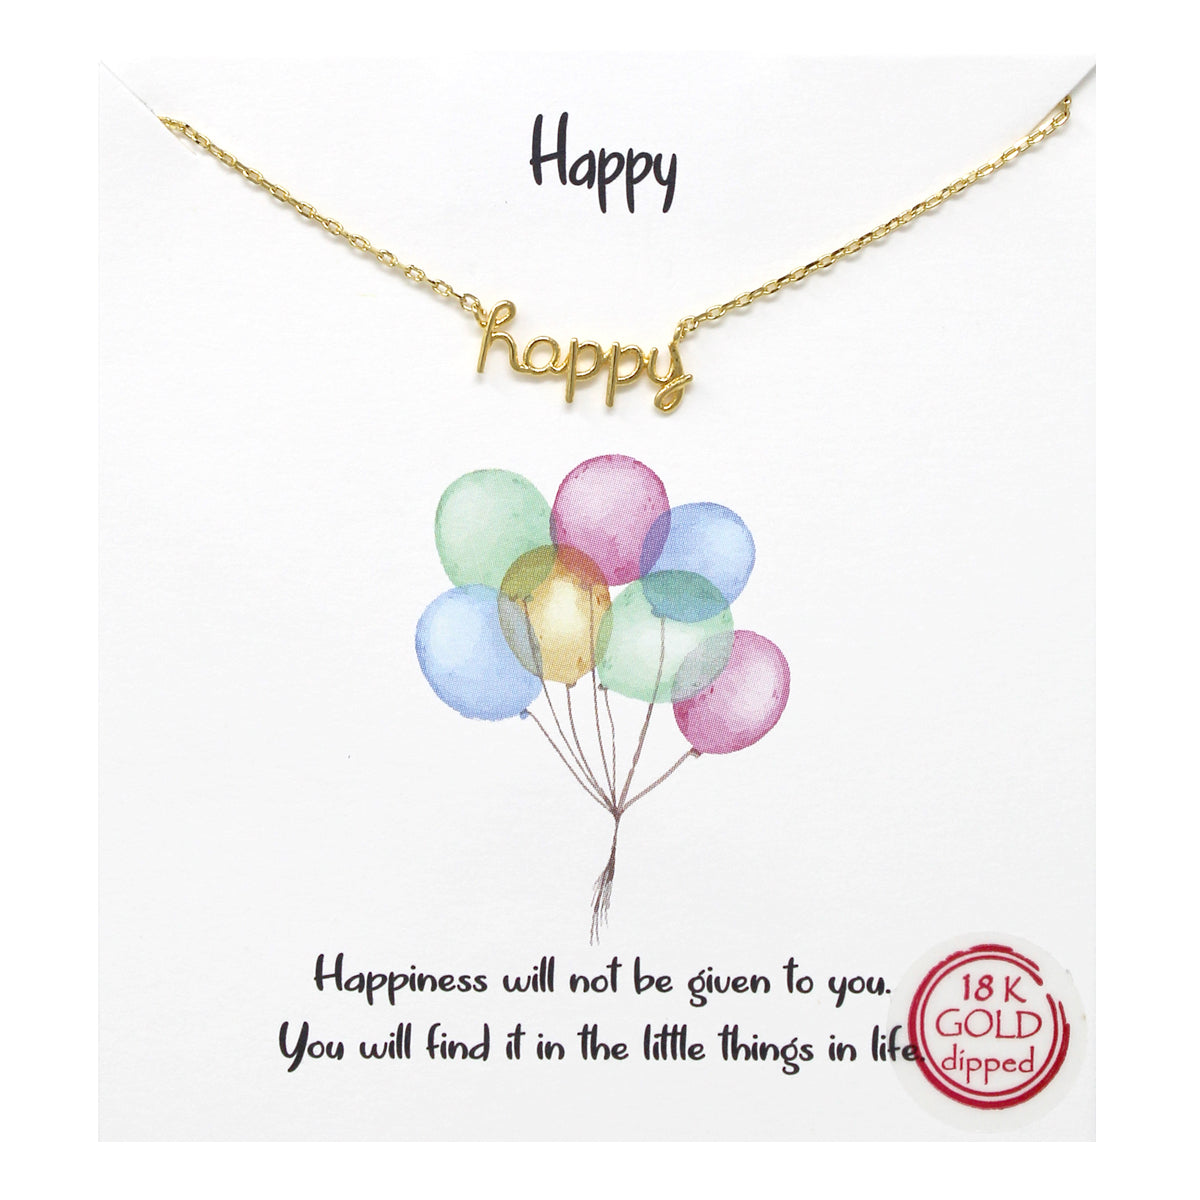 Tell Your Story: Happy Pendant Simple Chain Short Necklace